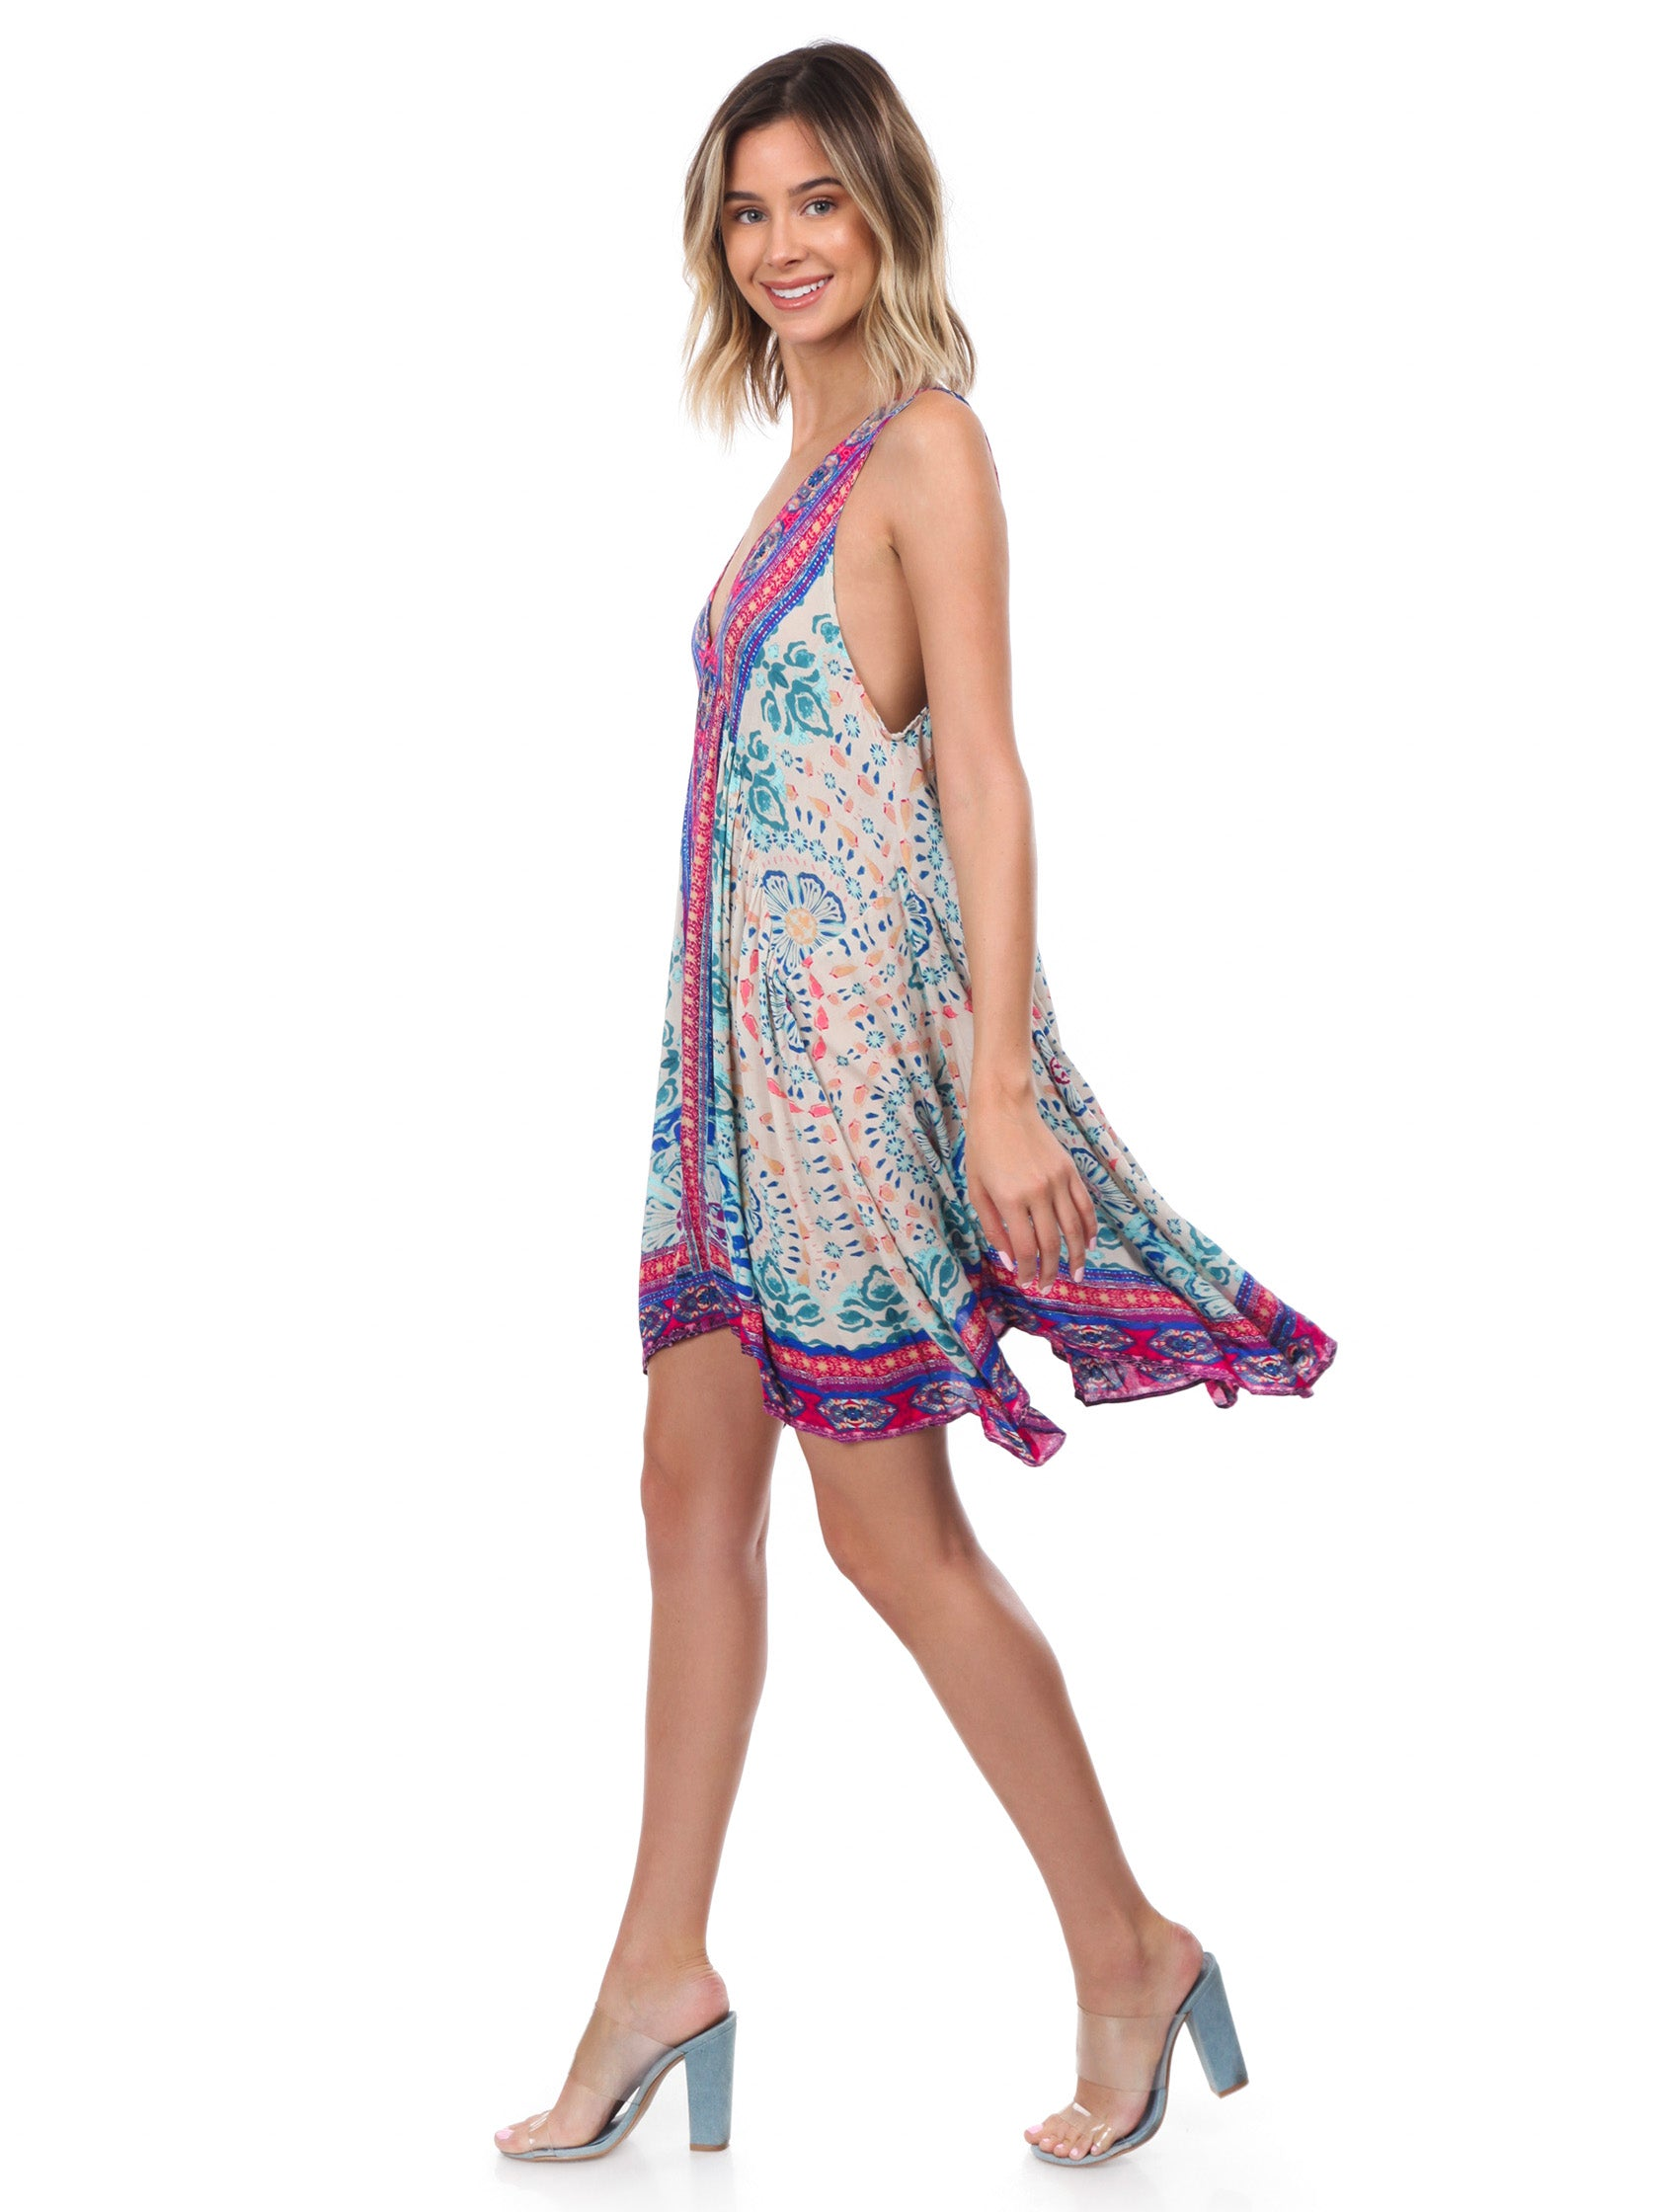 4444bb29454d1 Woman wearing a dress rental from Free People called Gypsy Trapeze Dress